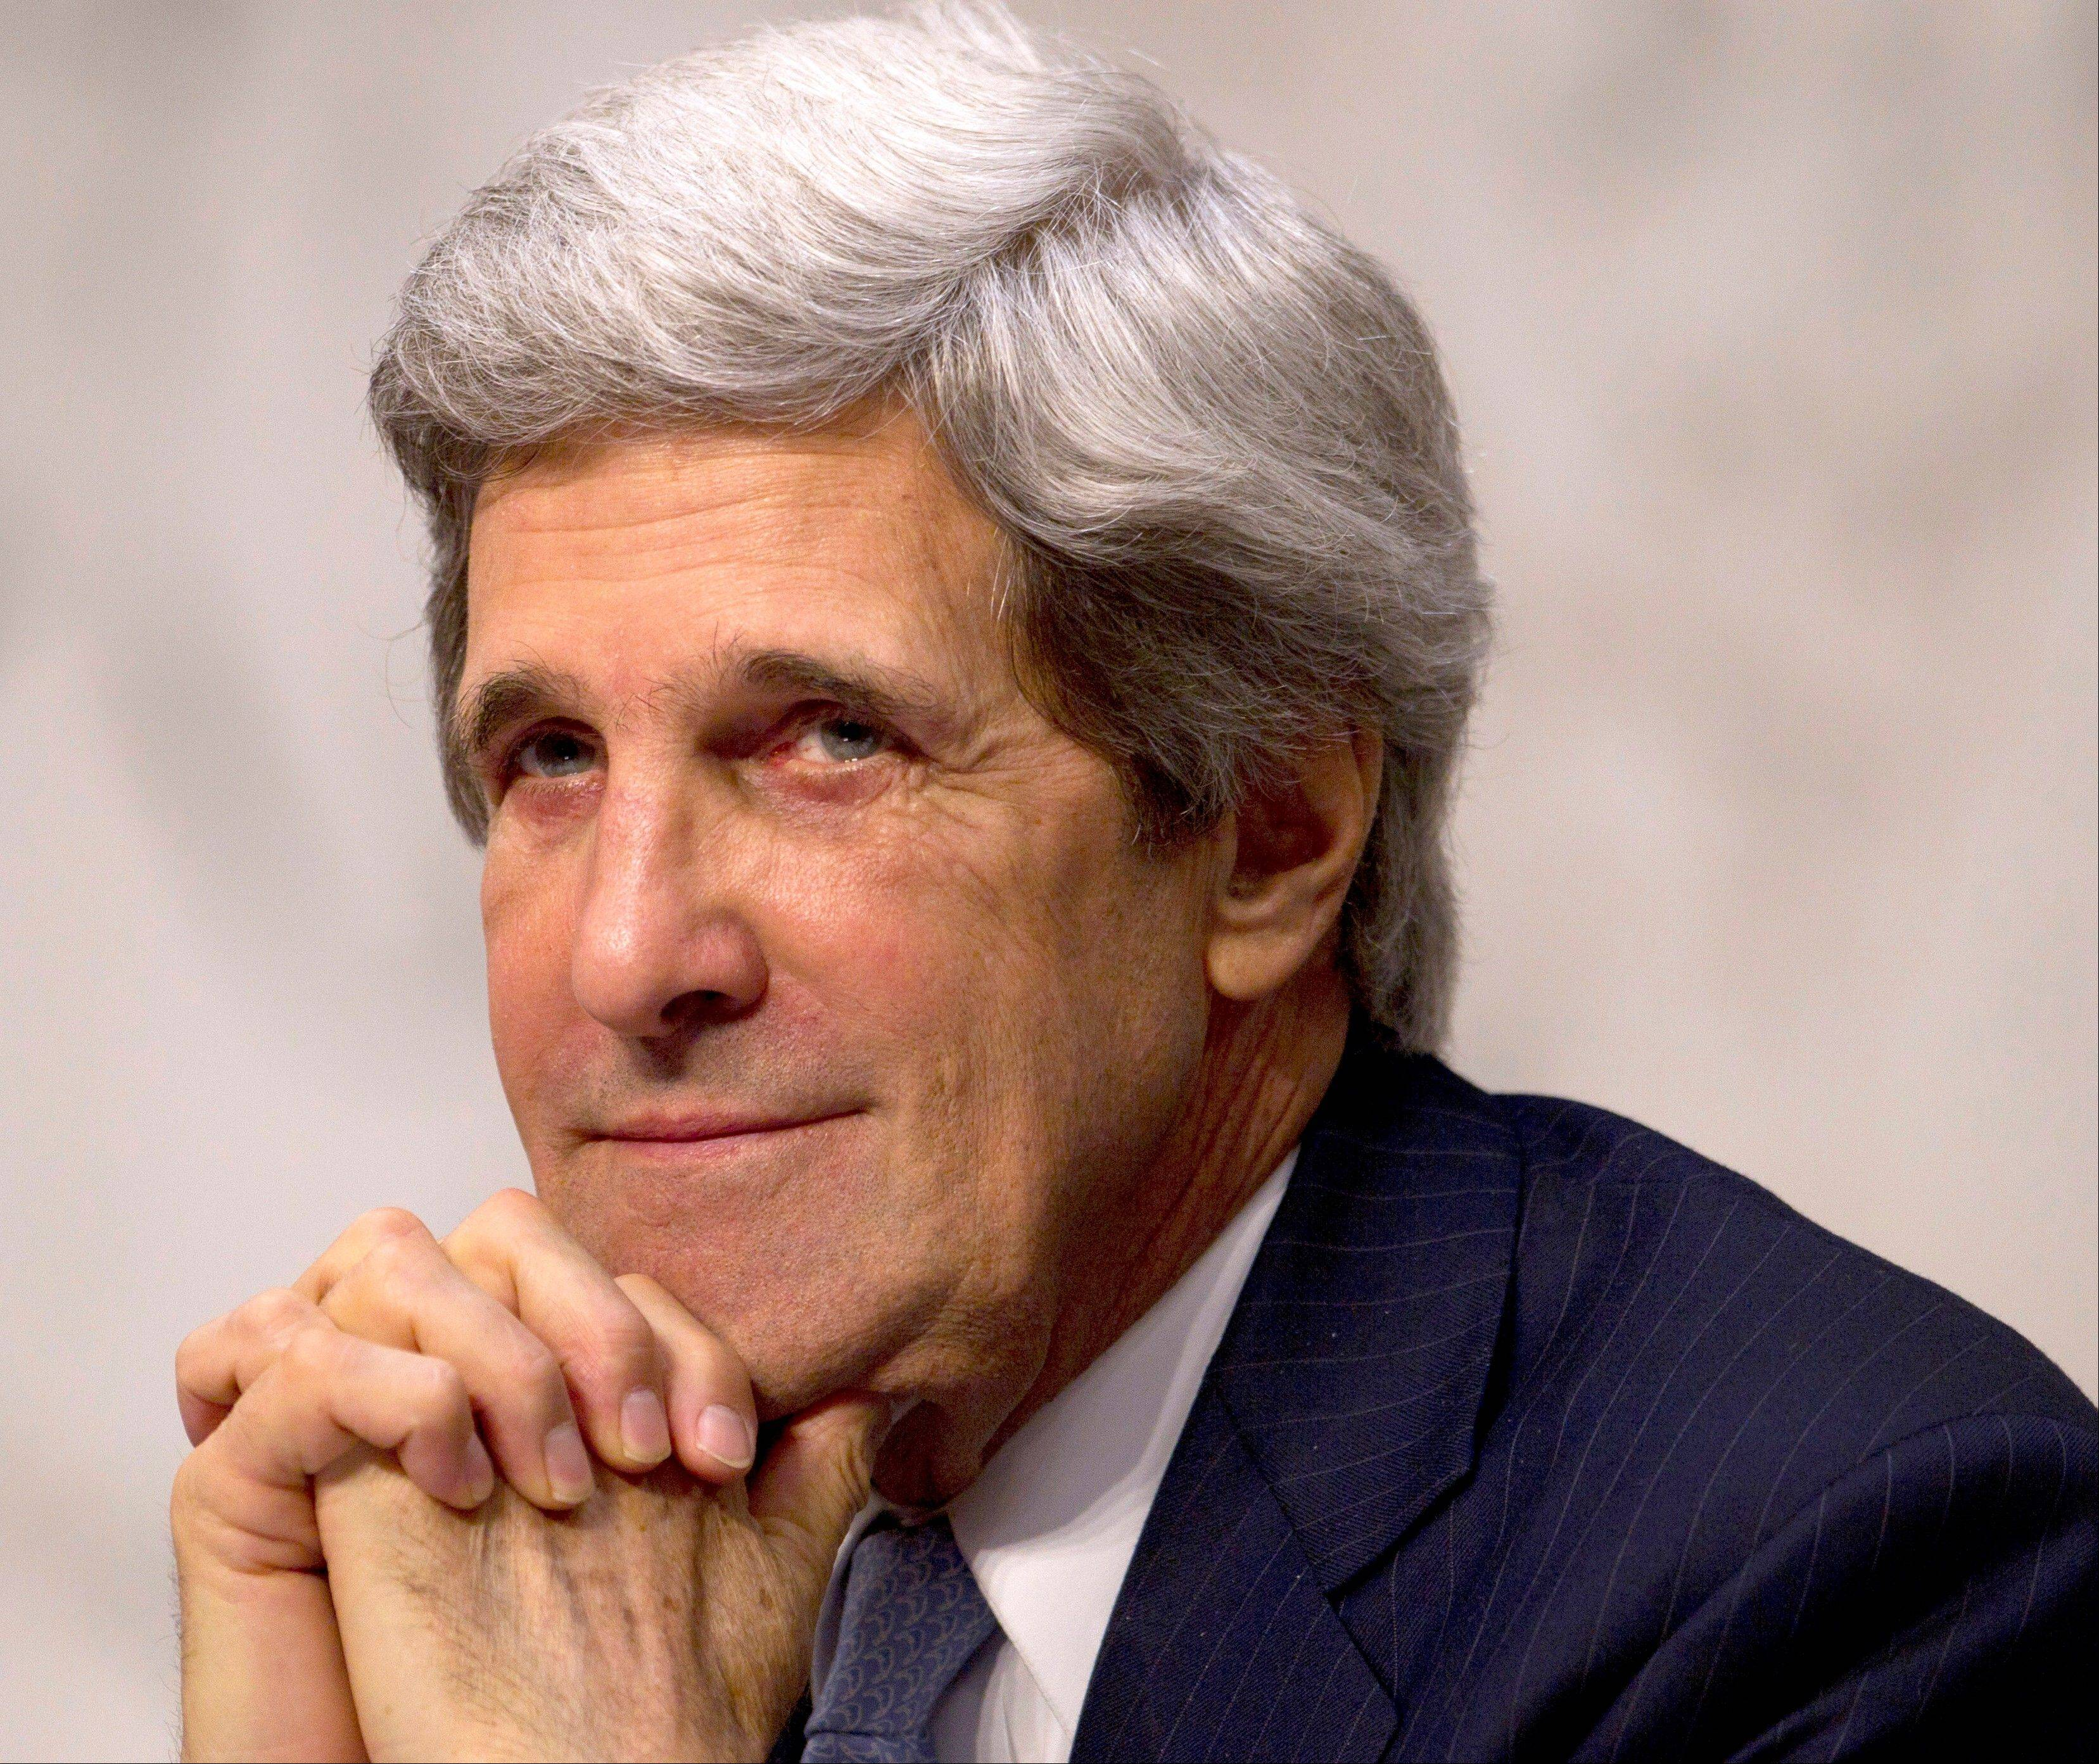 In this Feb. 28 file photo, Senate Foreign Relations Committee Chairman Sen. John Kerry, D-Mass., is seen on Capitol Hill in Washington. Kerry's speech to the Democratic National Convention Thursday night is an audition of sorts for secretary of state if President Barack Obama is re-elected.